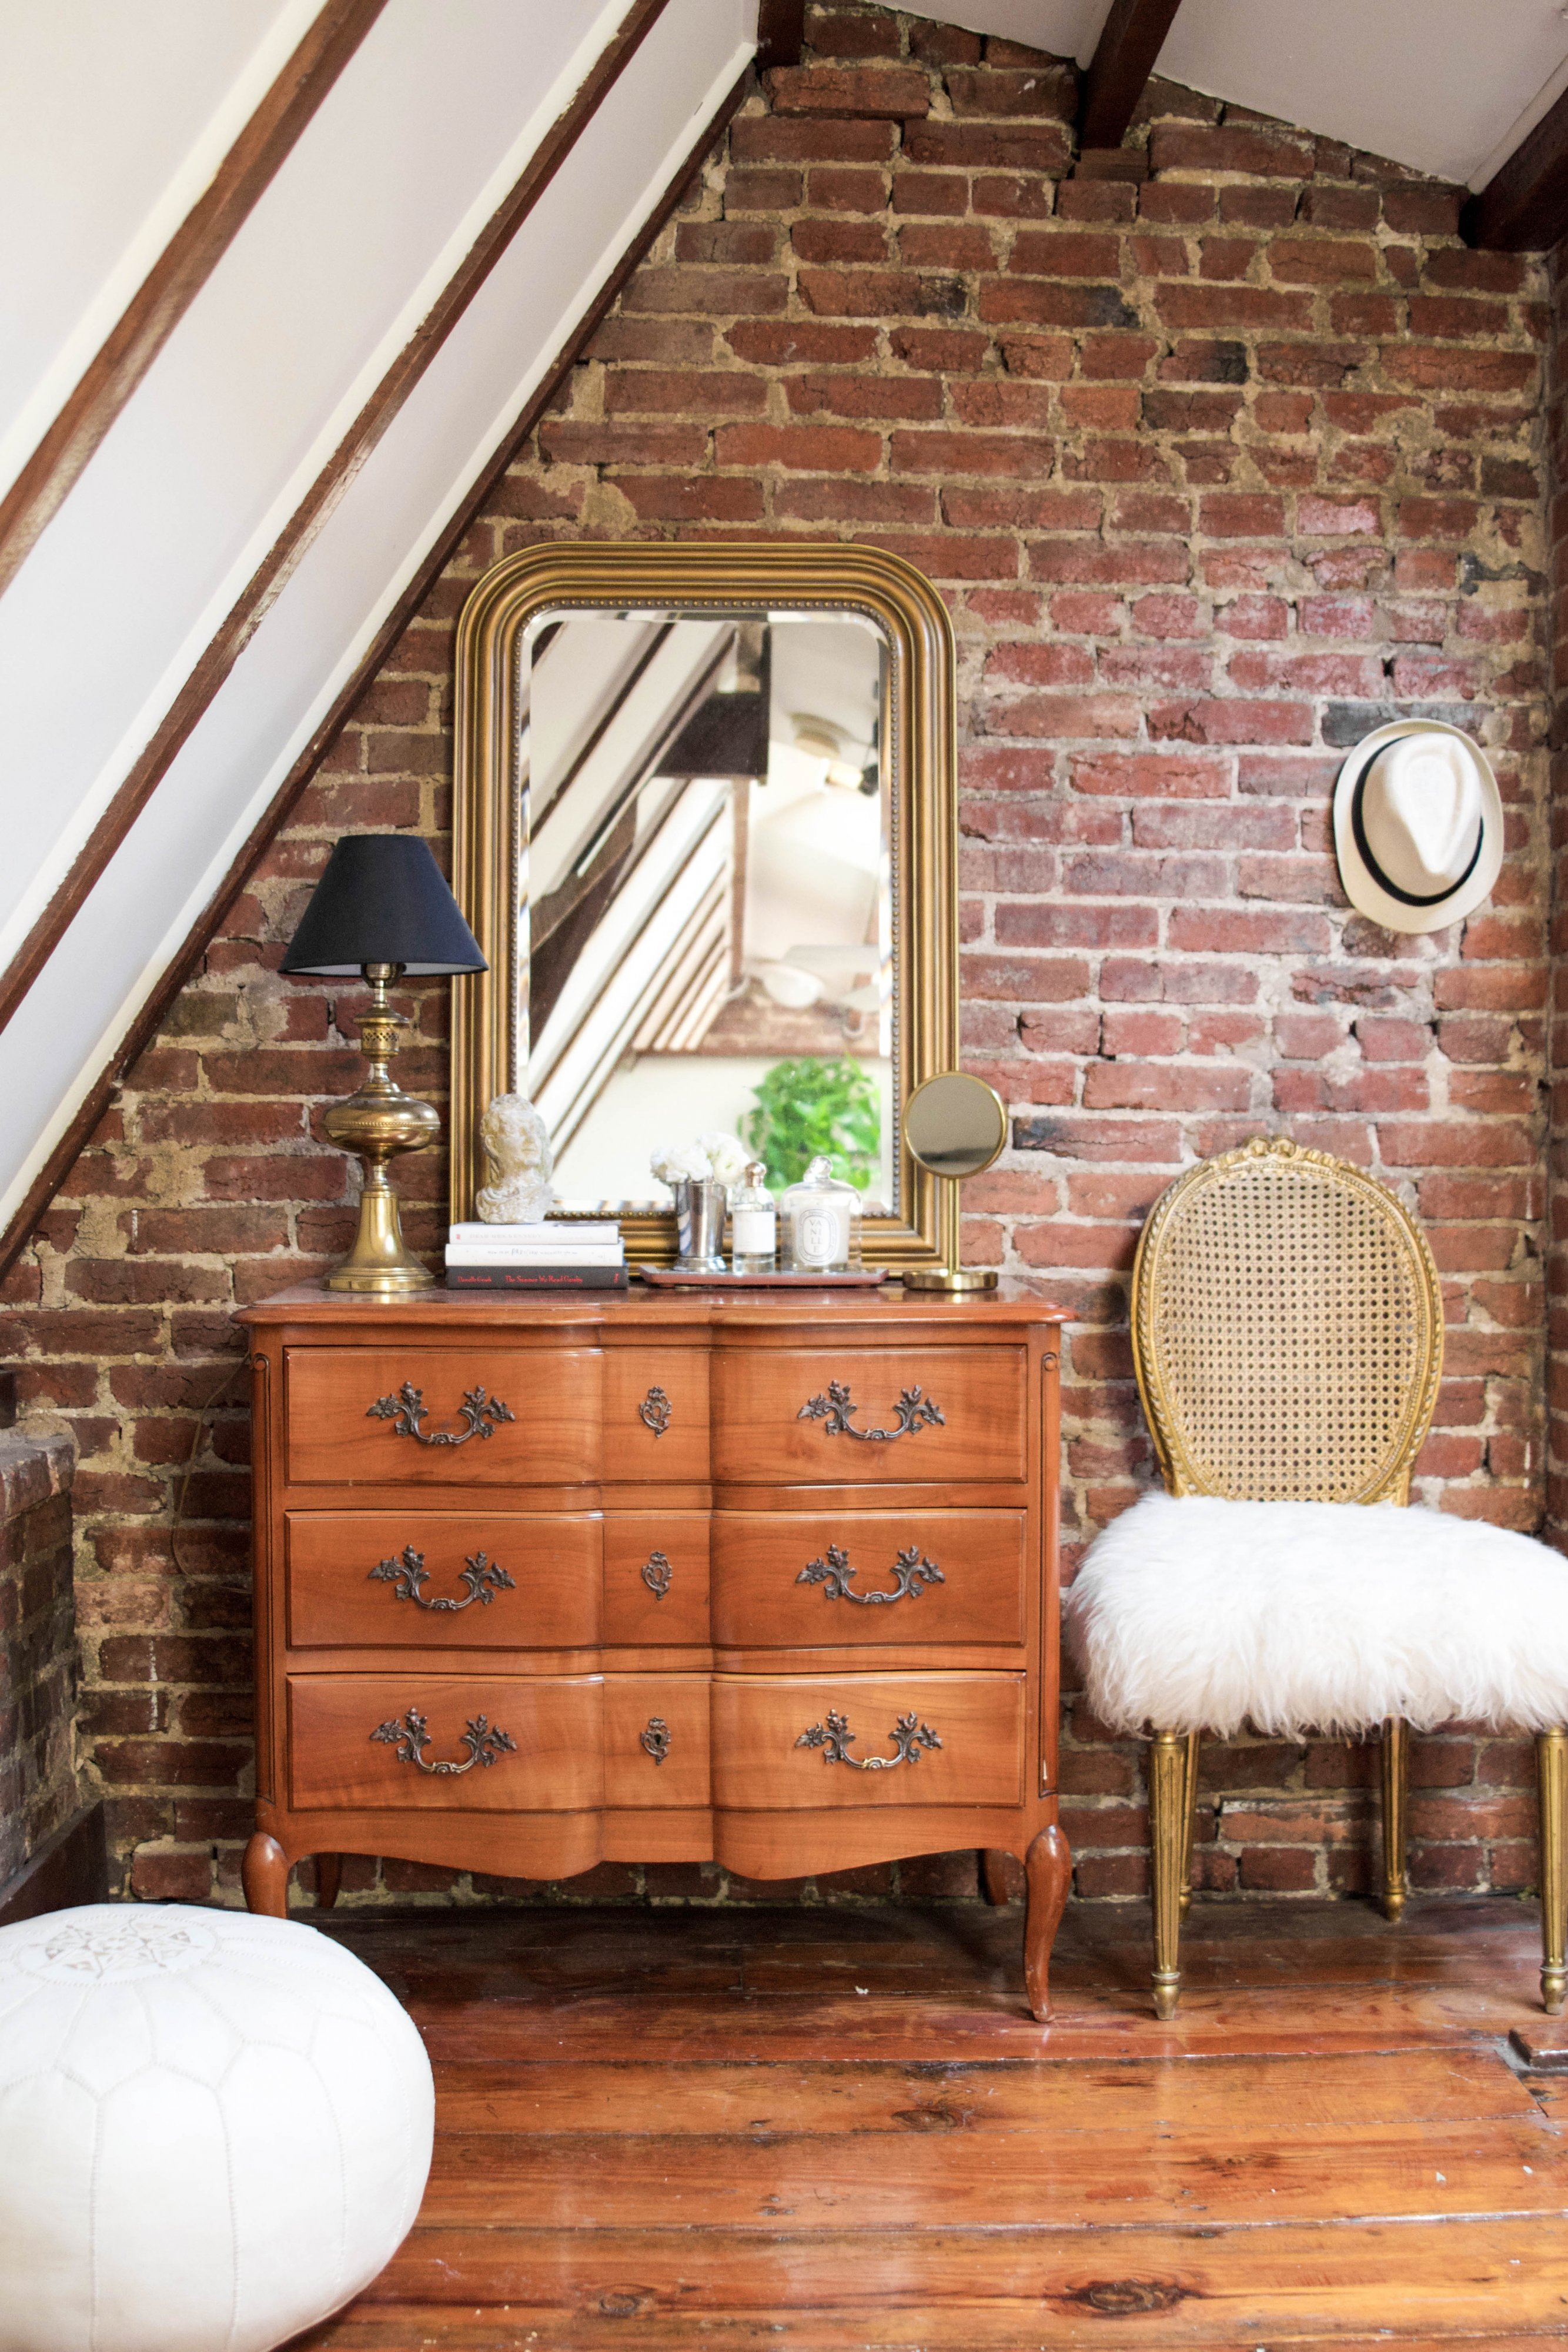 Look Inside My Home: An Exposed Brick Loft in Dupont Circle